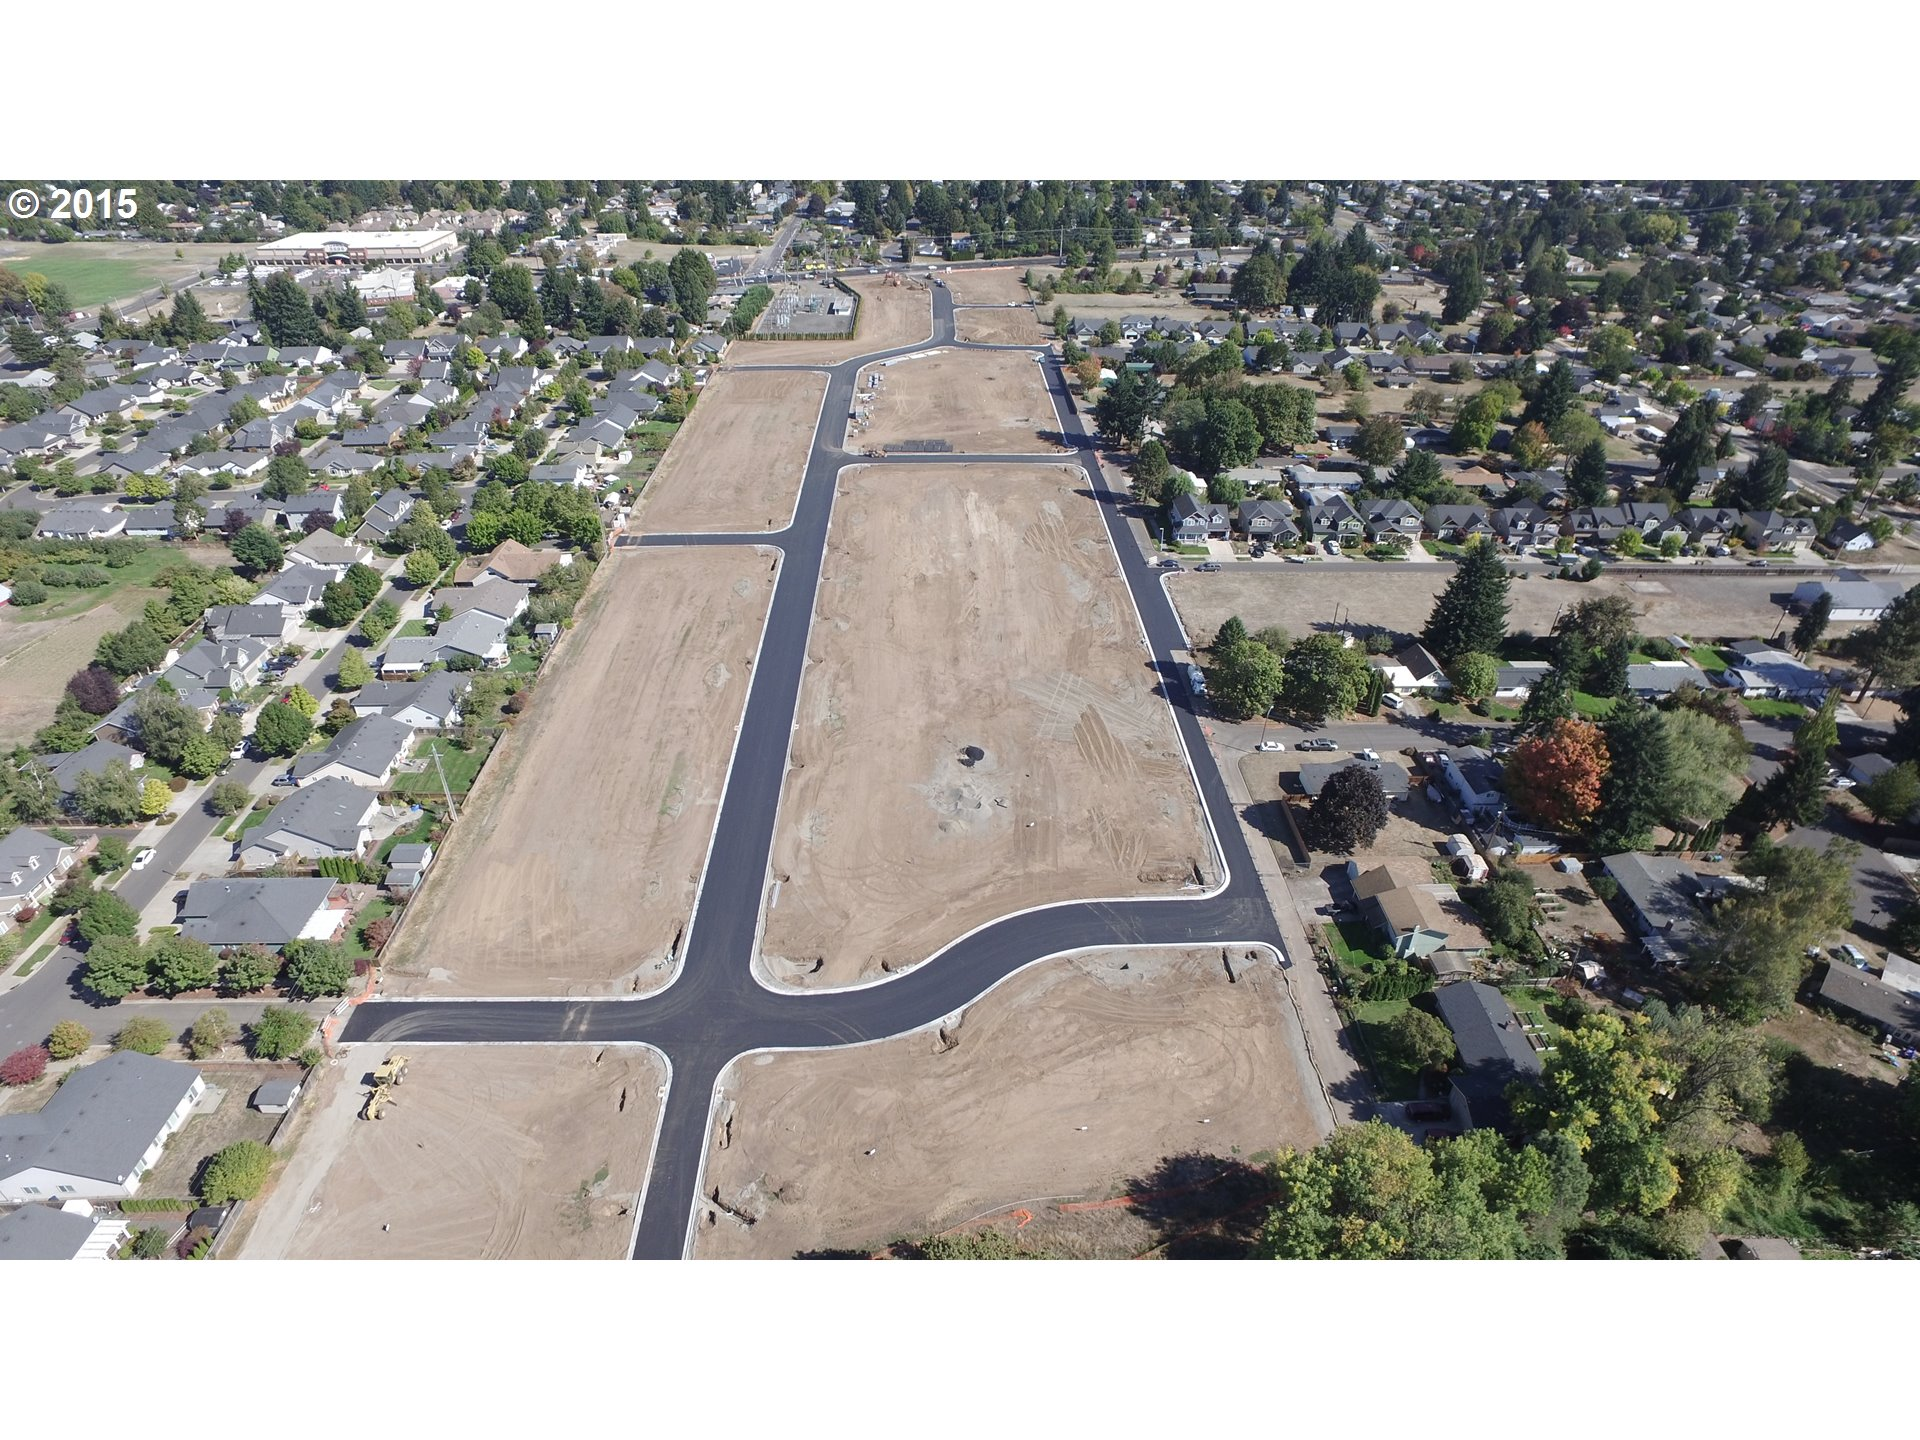 45 W Dean Lot 4, Eugene, OR 97404